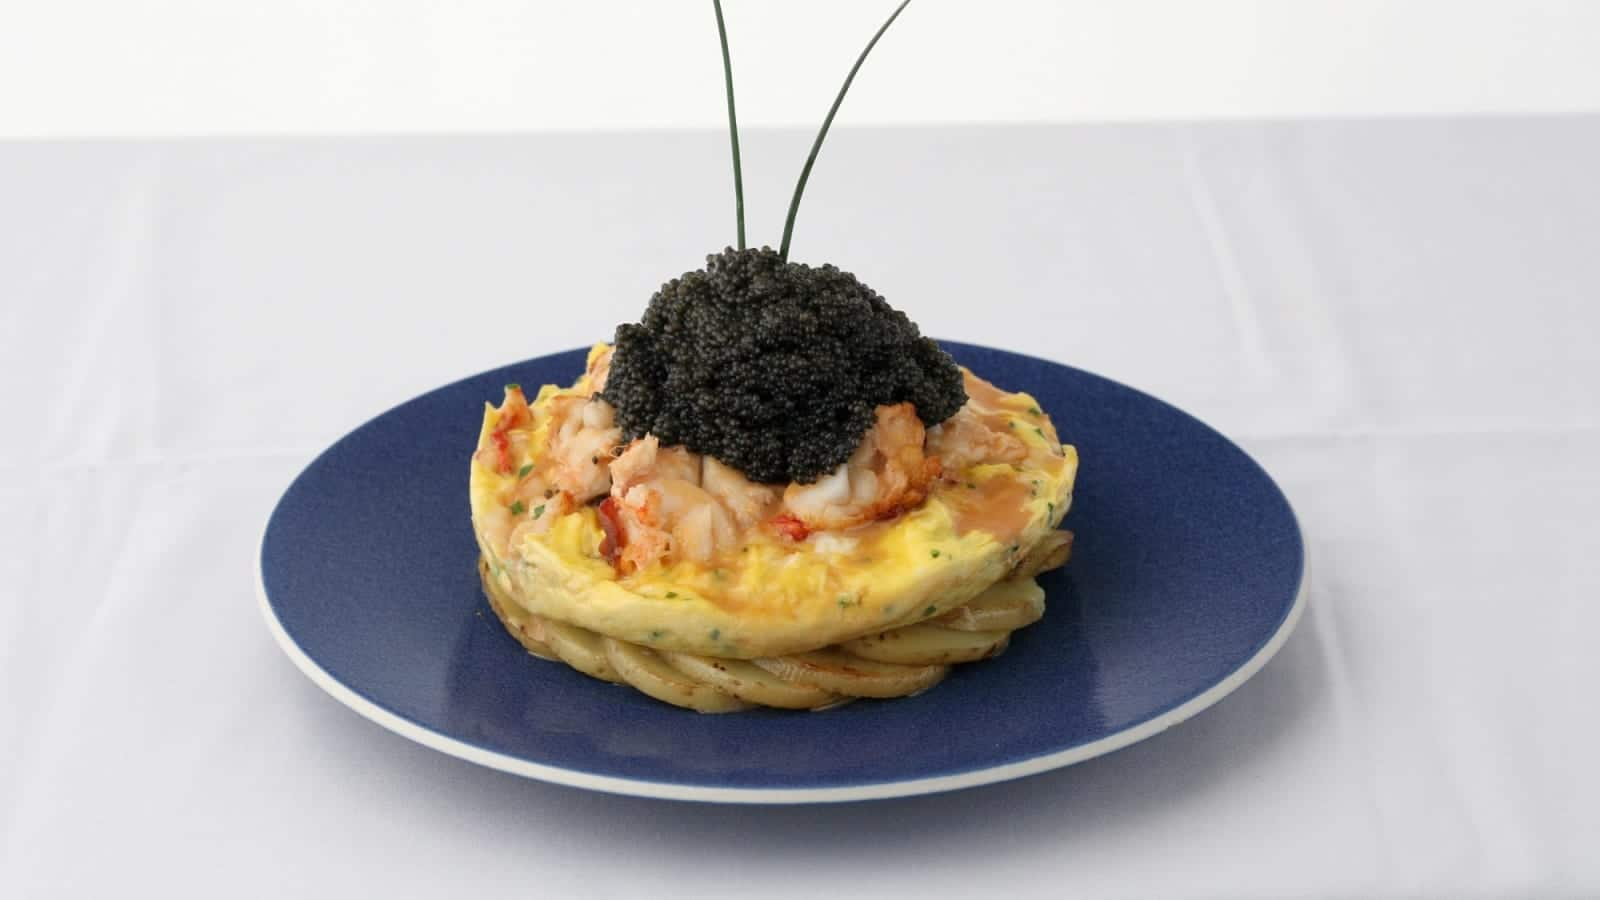 Zillion Dollar Lobster Omelet - Most Expensive Food in the World